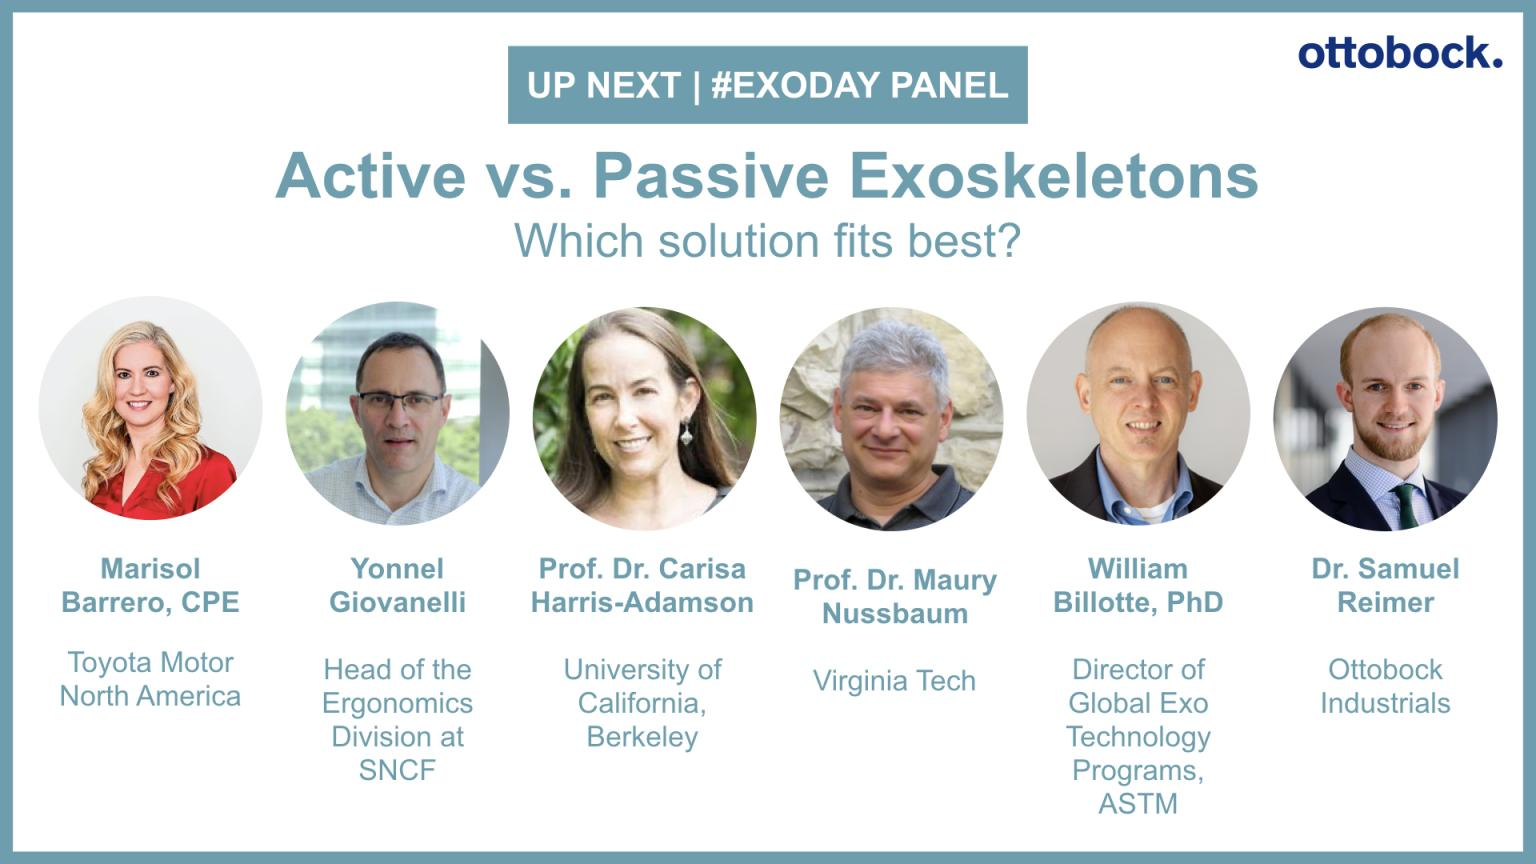 Active vs. Passive Exoskeletons – Which solution fits best?